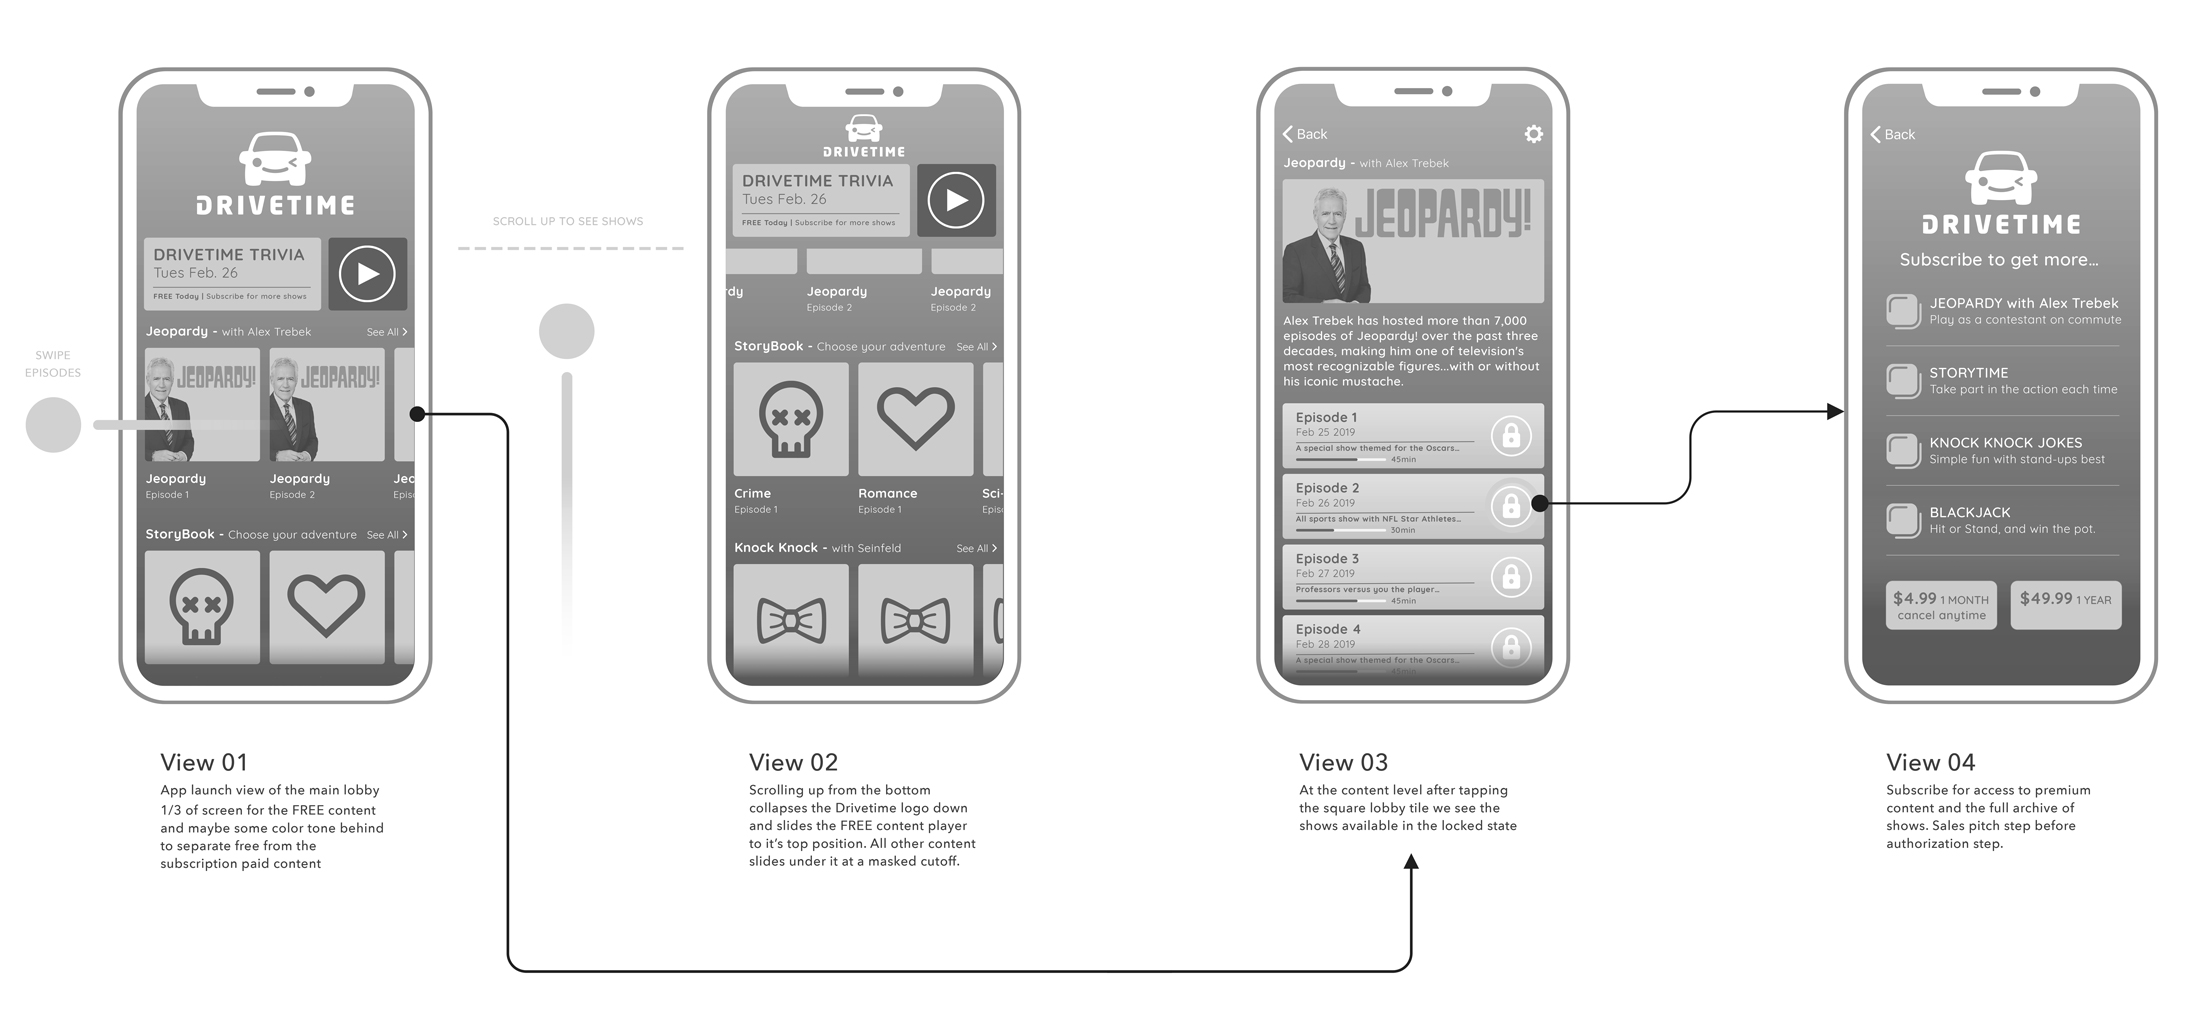 DriveTime_wireframes_show-scroll.jpg